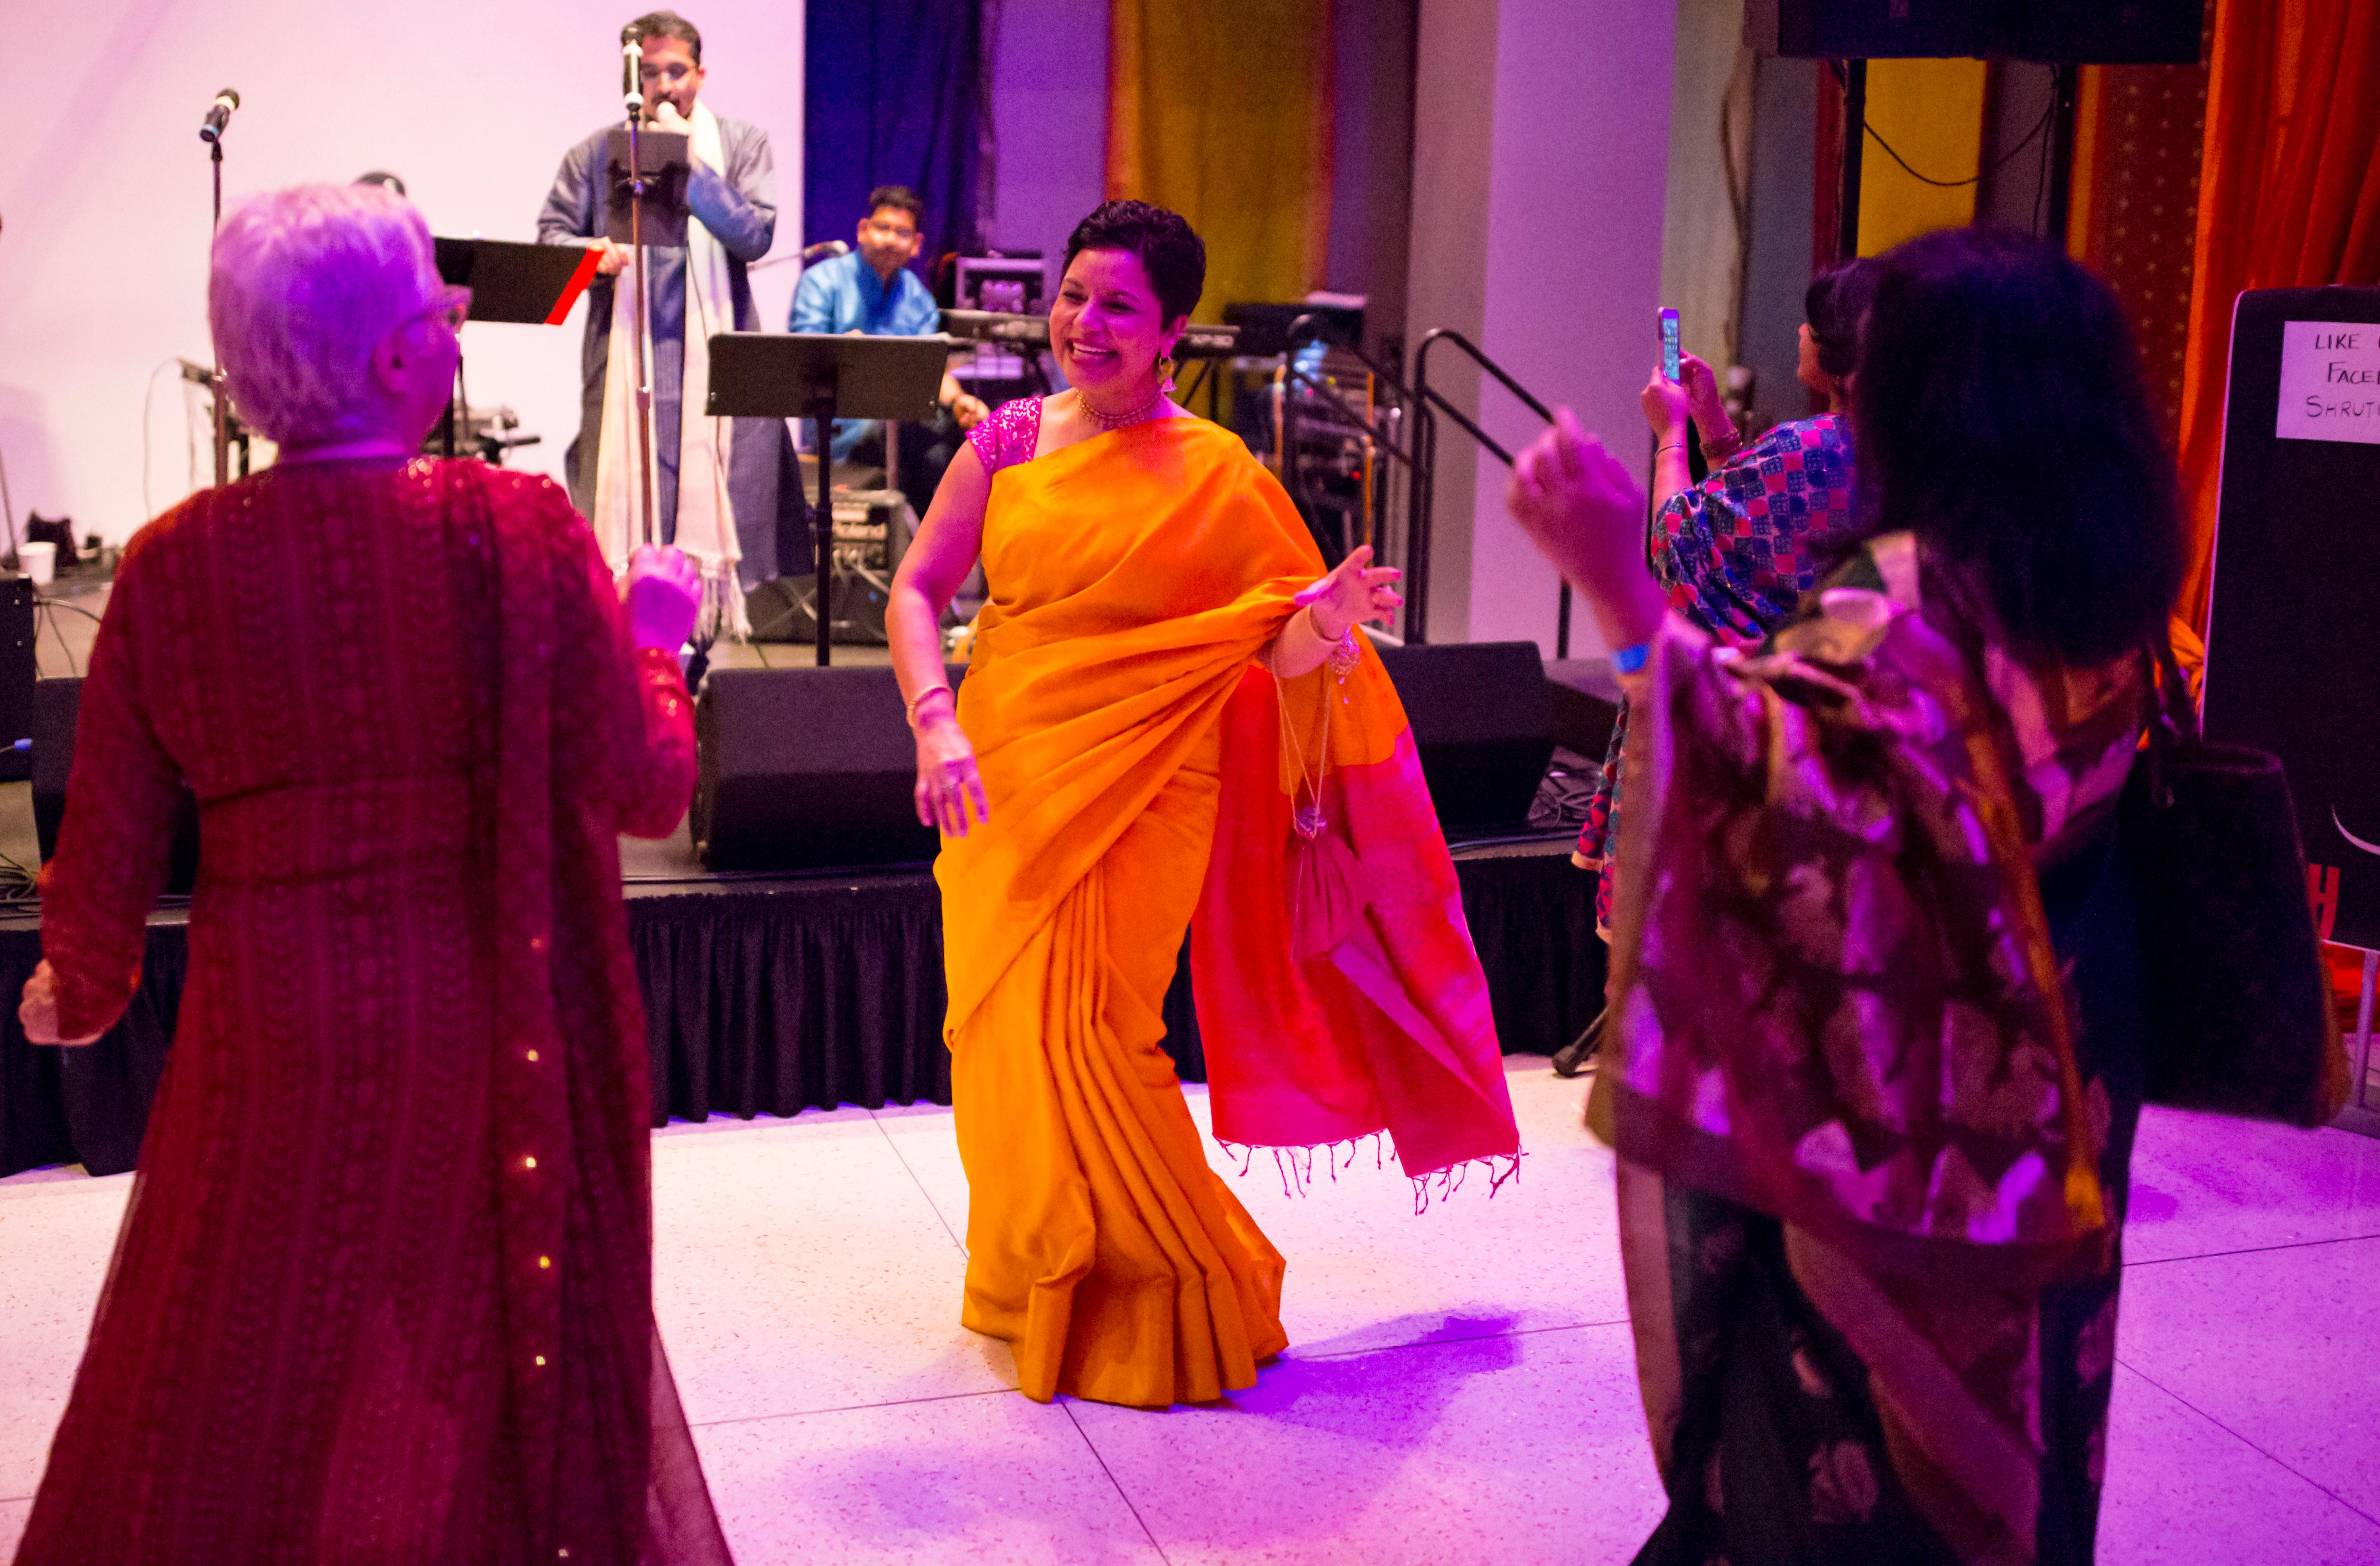 The Seattle Art Museum held their 10th annual Diwali Ball, celebrating India's Festival of Lights on Saturday, October 14 2017. Diwali is a festival of joy celebrating the triumph of good over evil. The high energy celebration featured henna, dancing, signature cocktails, and fortune tellers for the excited attendees. (Image: Sy Bean / Seattle Refined)